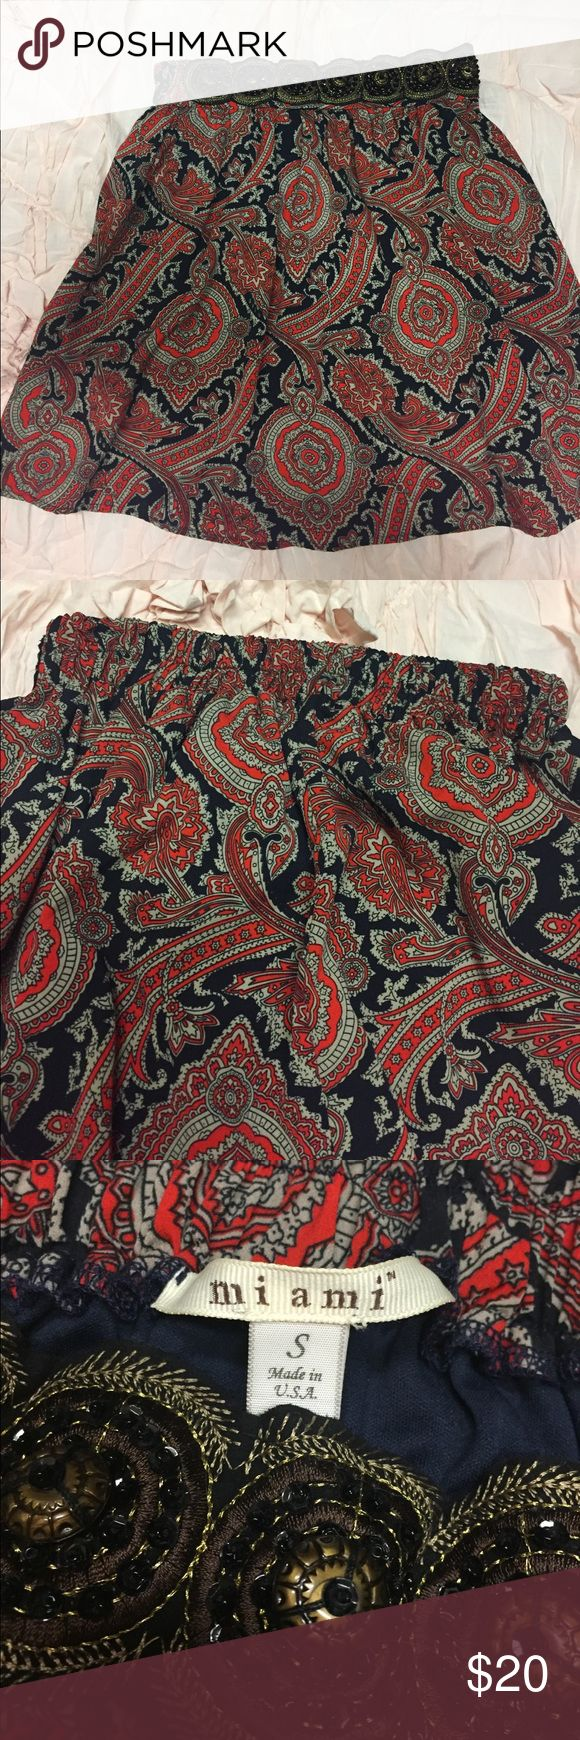 Small Boutique Brand Skirt Only worn once and in excellent shape! This skirt is a size small and includes a comfortable elastic waistband. The gold, black, and red patterned fabric is perfect for fall! This beaded detail on the waistband is beautiful! Miami brand purchased at Francesca's! miami Skirts Mini